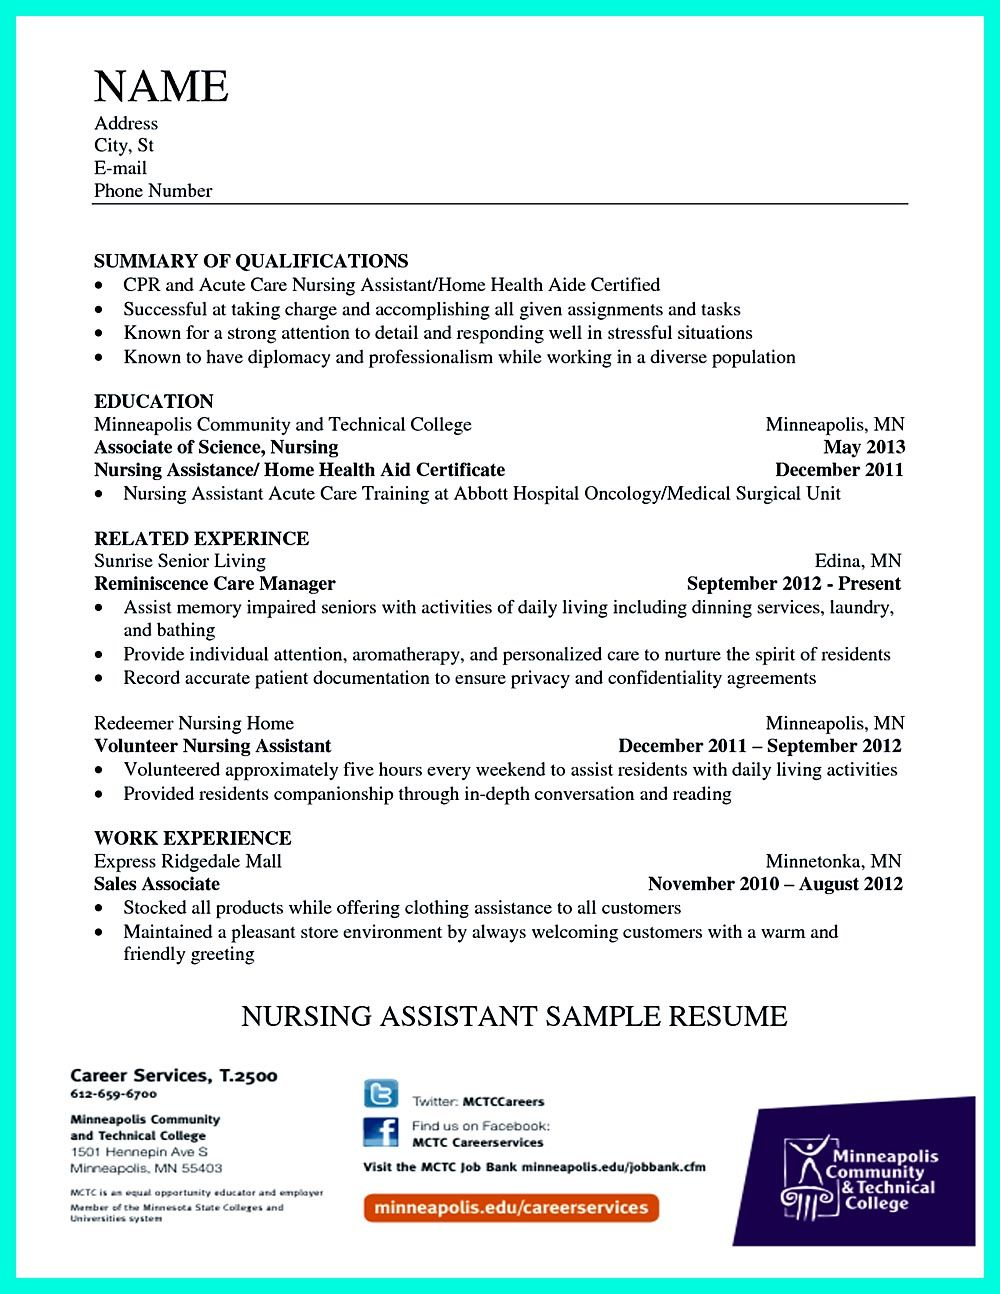 Writing Certified Nursing Assistant Resume Is Simple If You Follow These  Simple Tips. Some Highlights  Certified Nursing Assistant Resume Objective